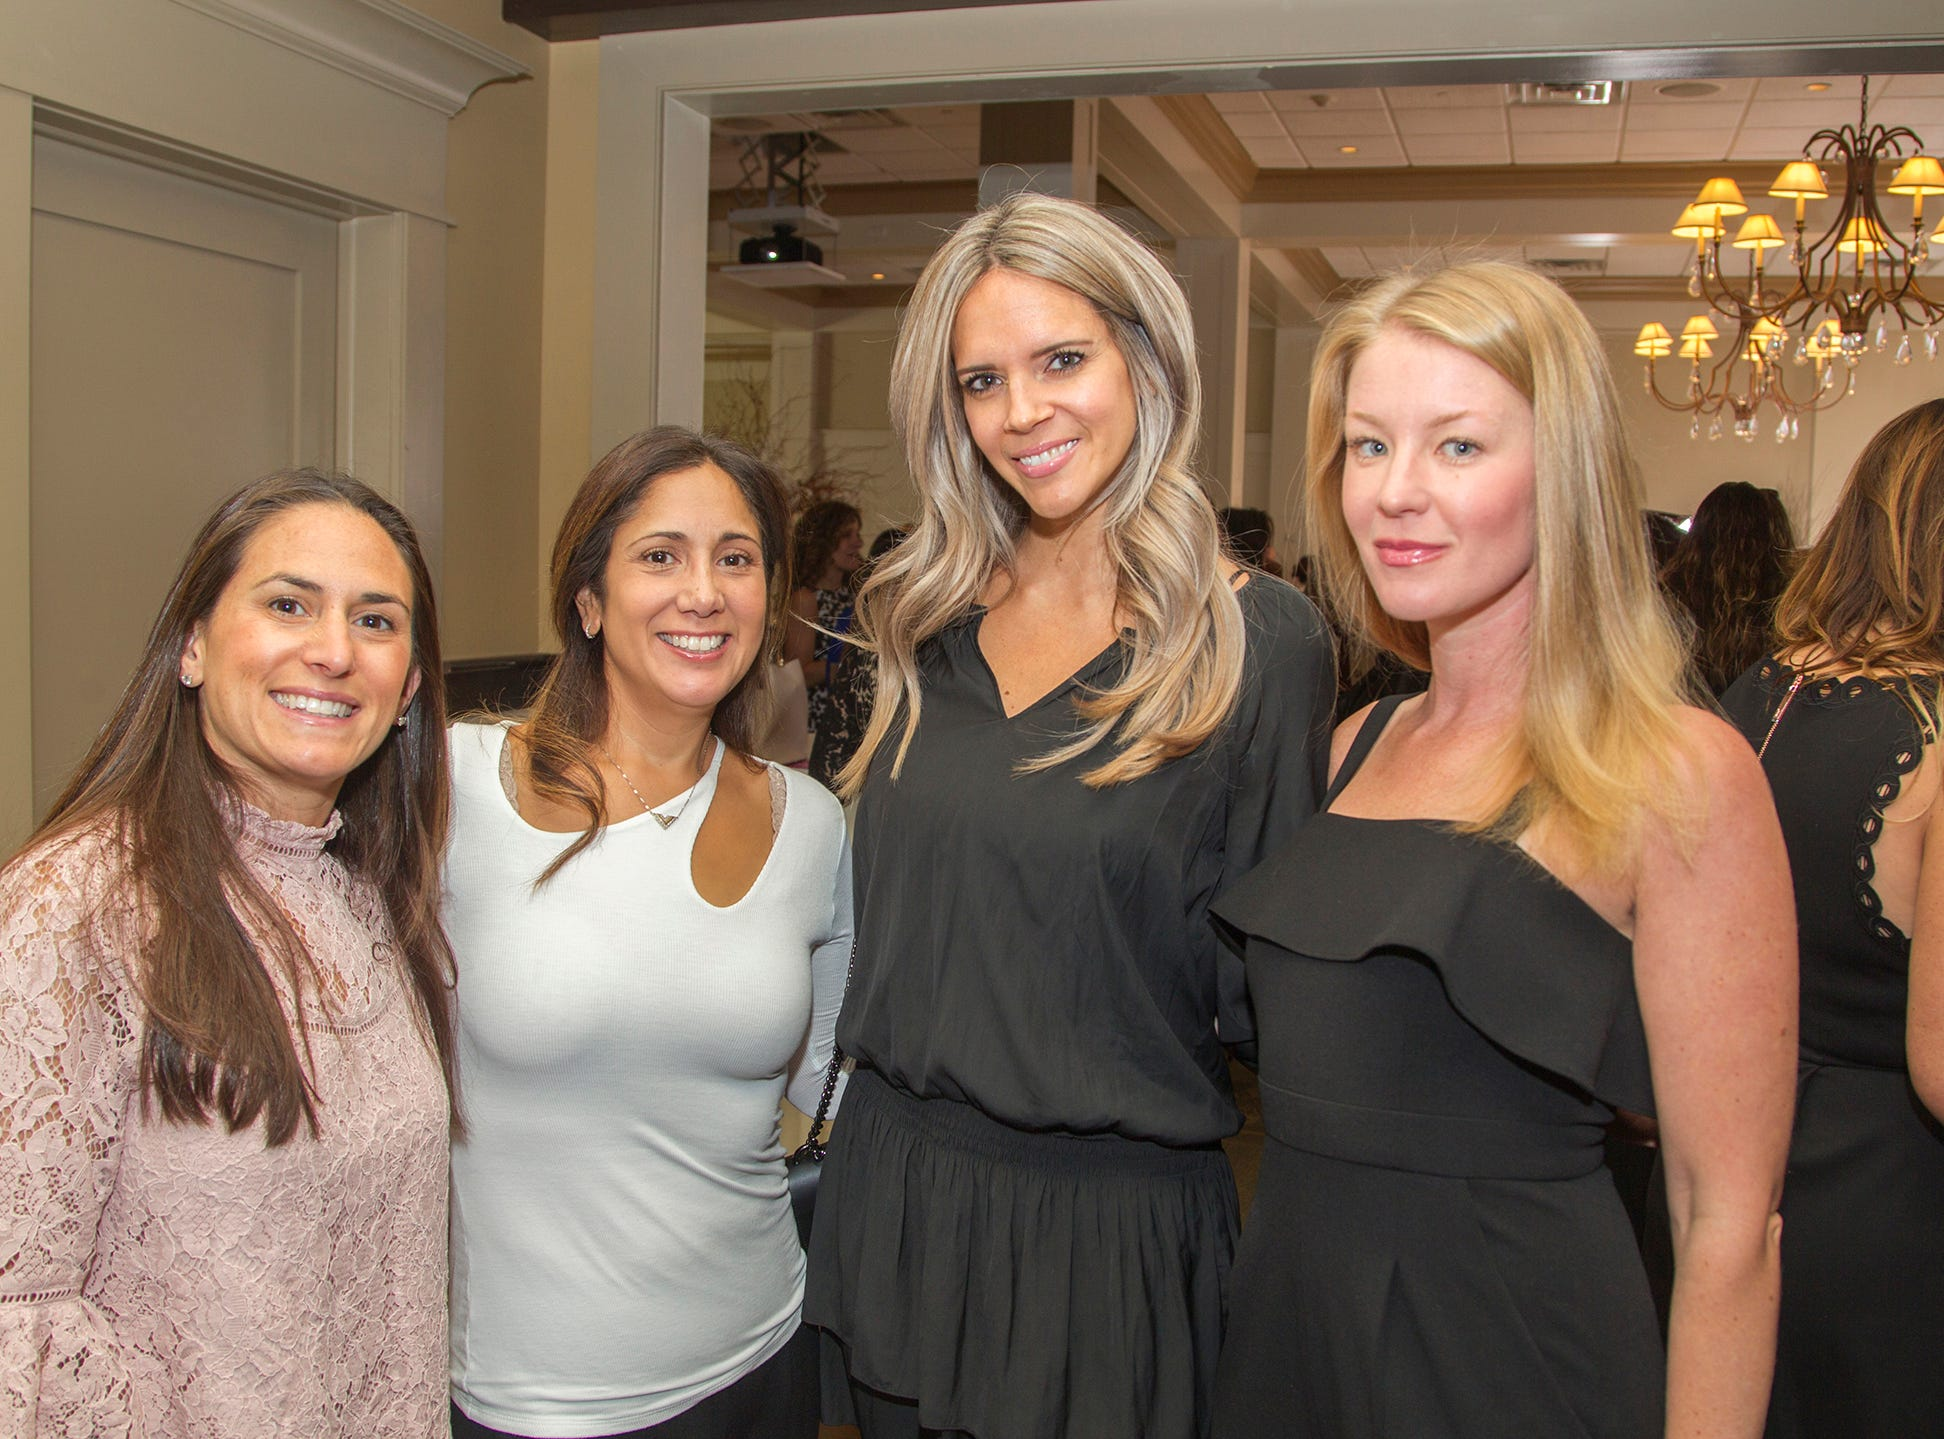 Erica Fishman, Jaime Weber, Rebecca Amoroso, Eilleen barrett. Spring Lake Toys Foundation held its 3rd annual fundraising gala luncheon at Indian Trail Club in Franklin Lakes. The luncheon fundraiser raises funds for children with illnesses. 10/18/2018